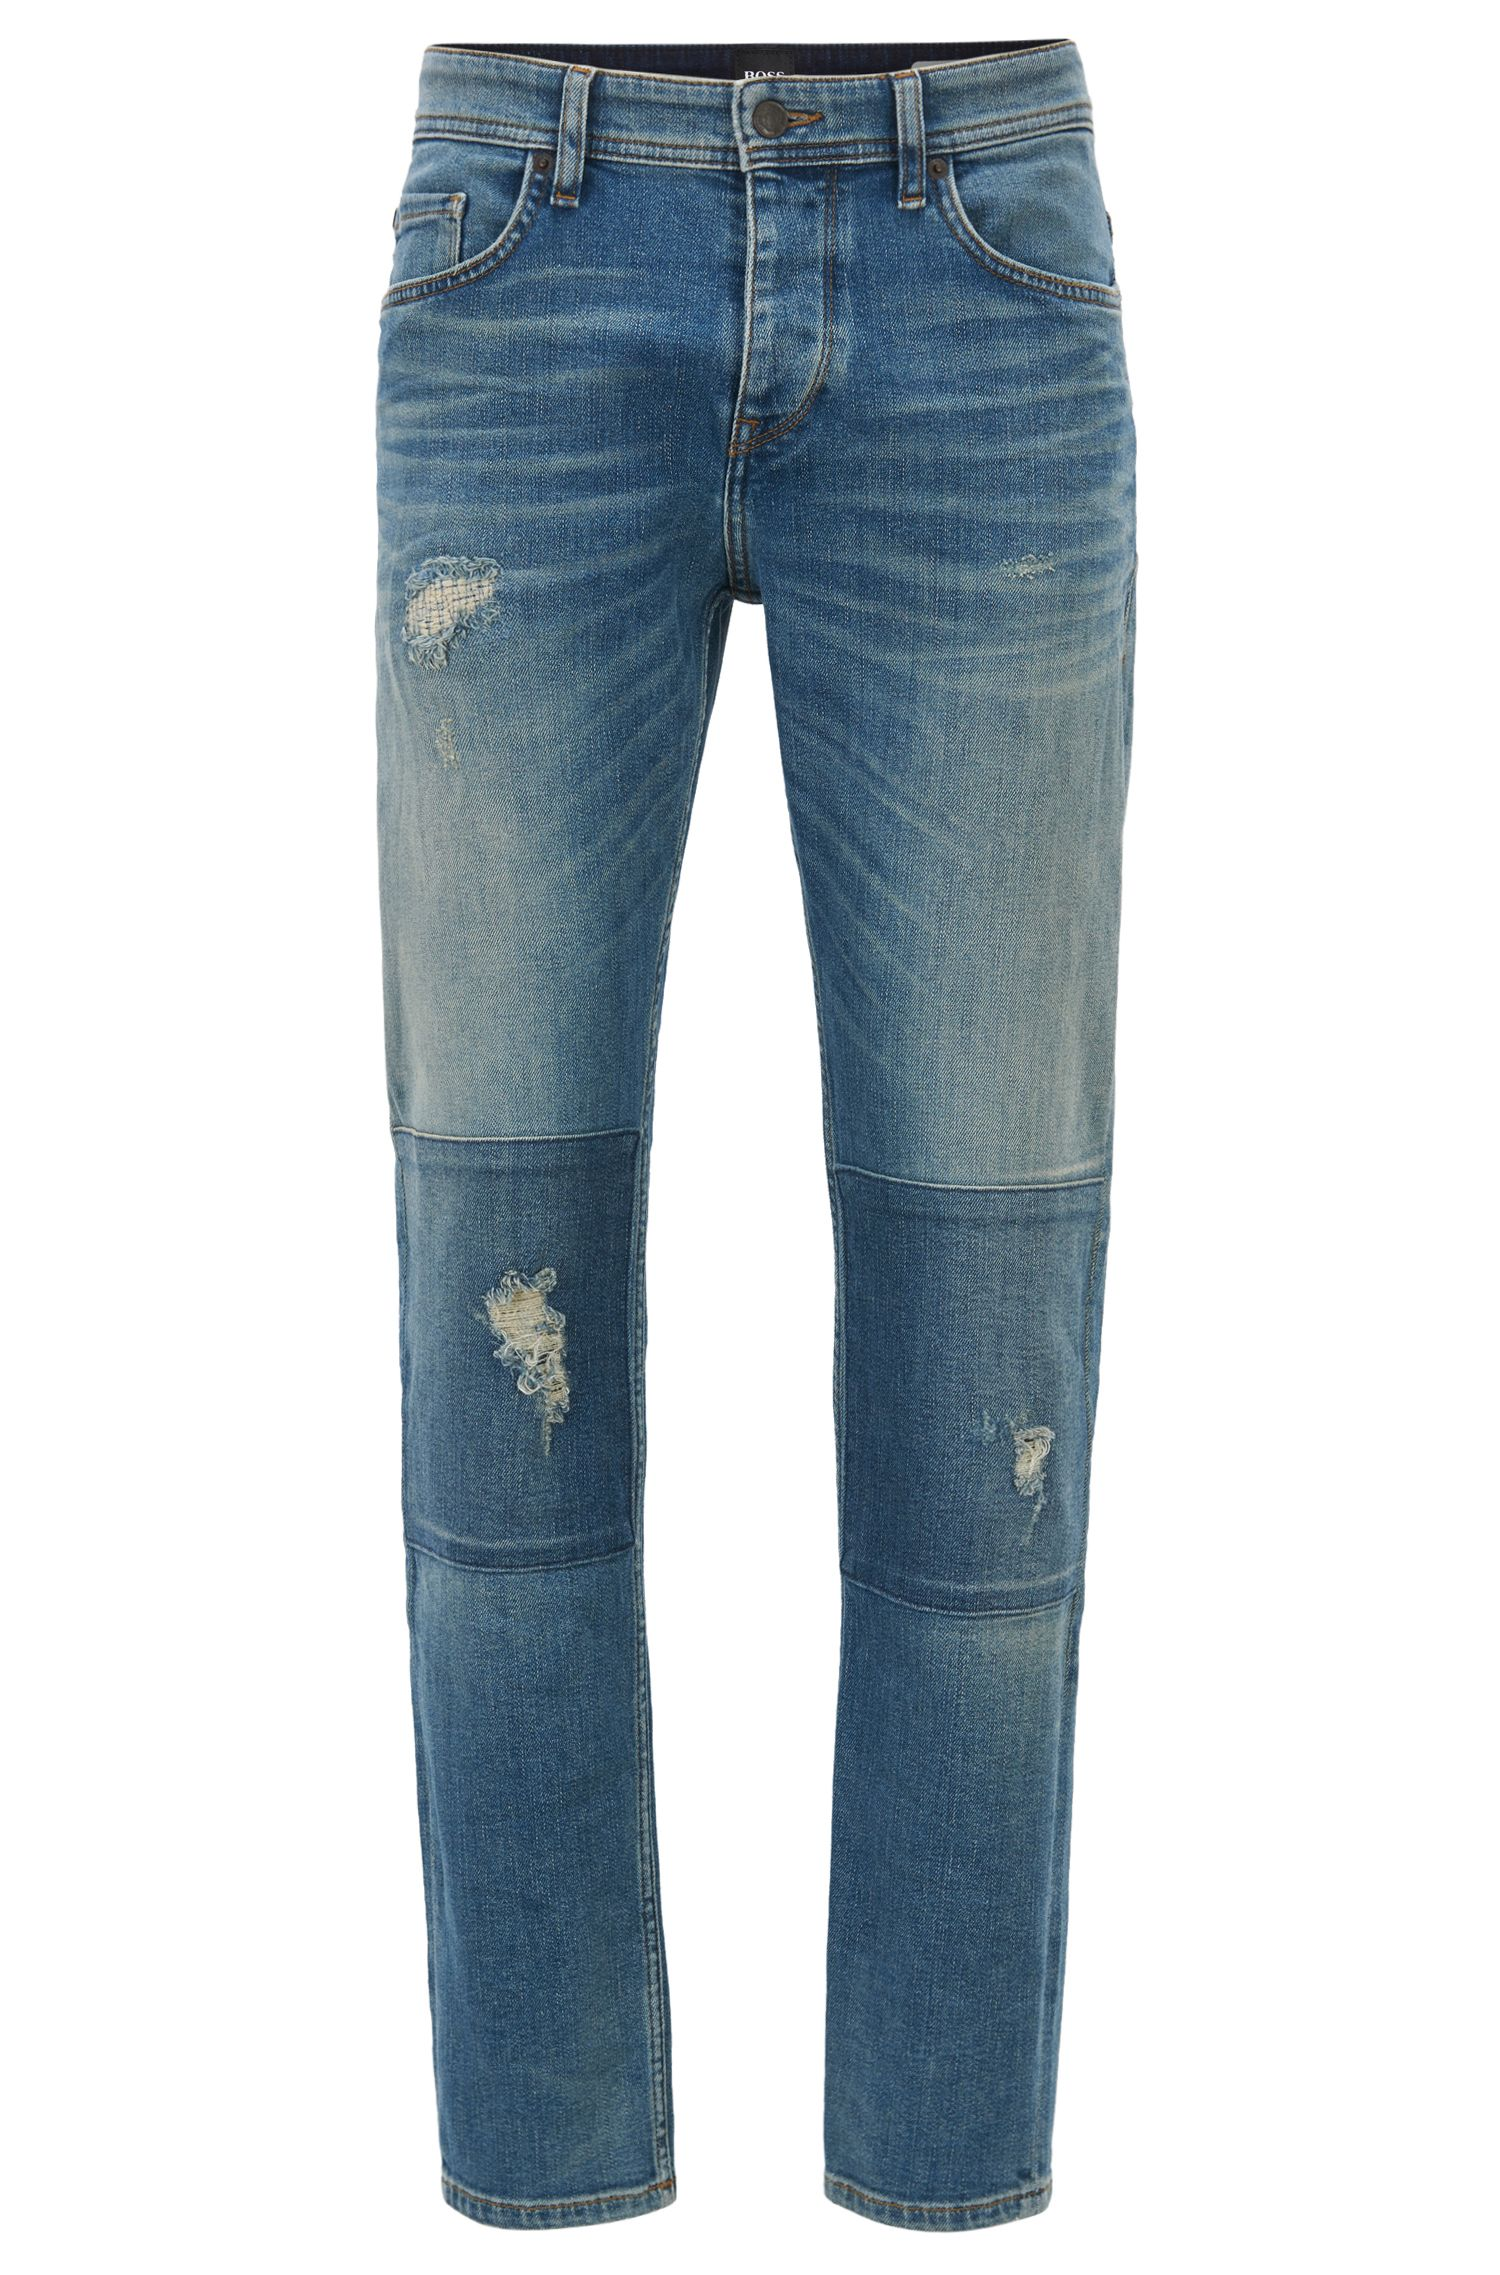 Tapered-Fit Jeans aus komfortablem Stretch-Denim im Vintage-Look